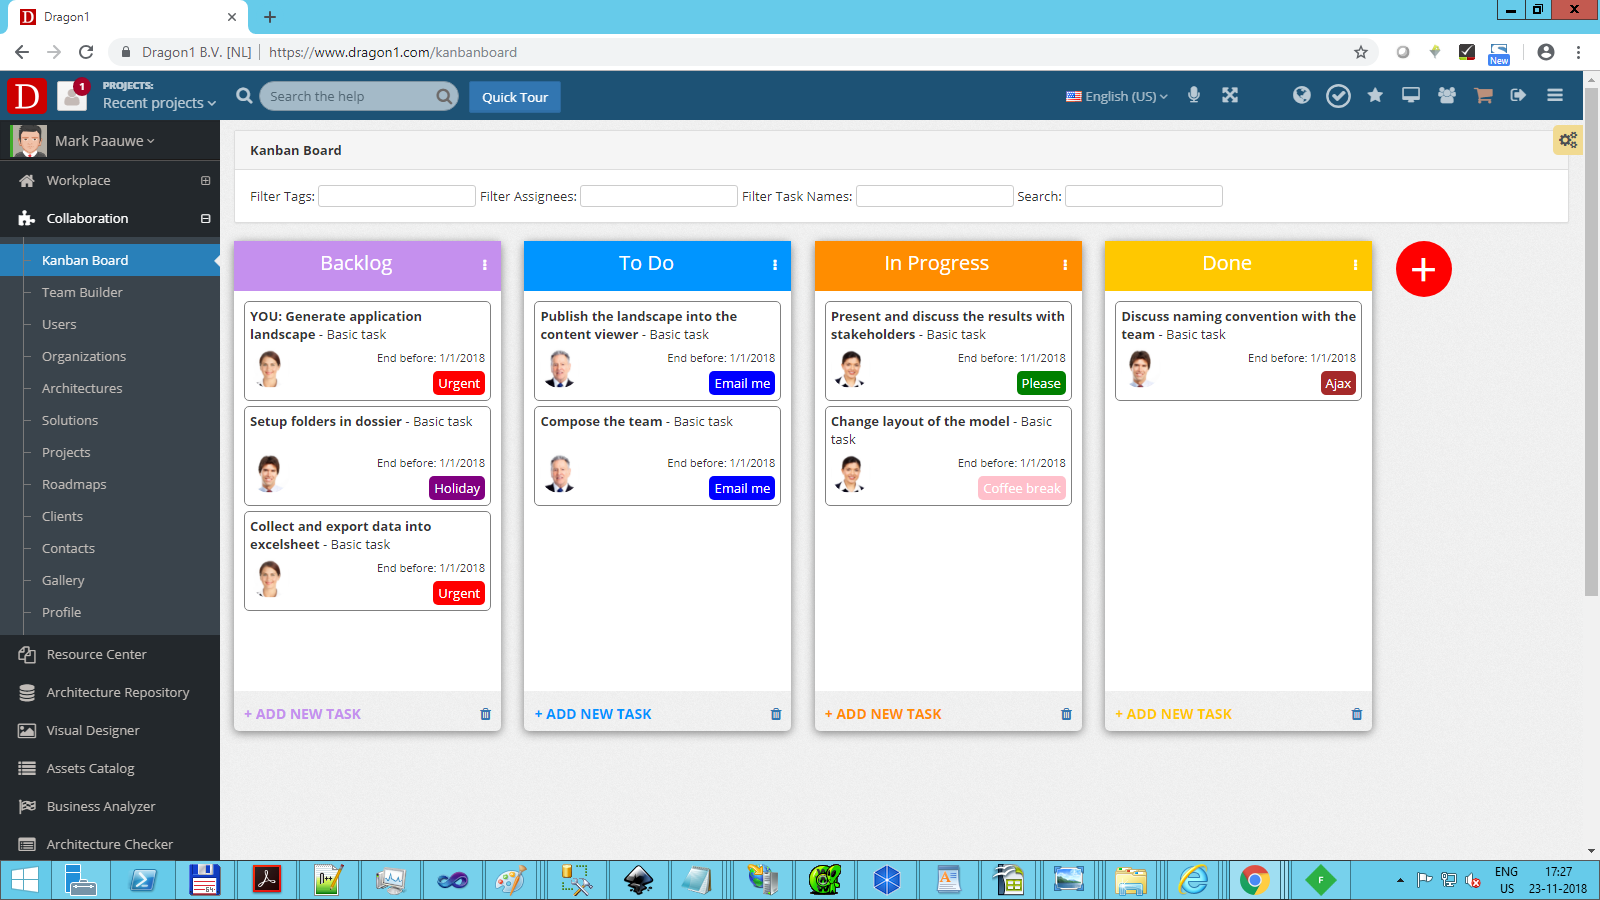 dragon1 collaboration kanban board